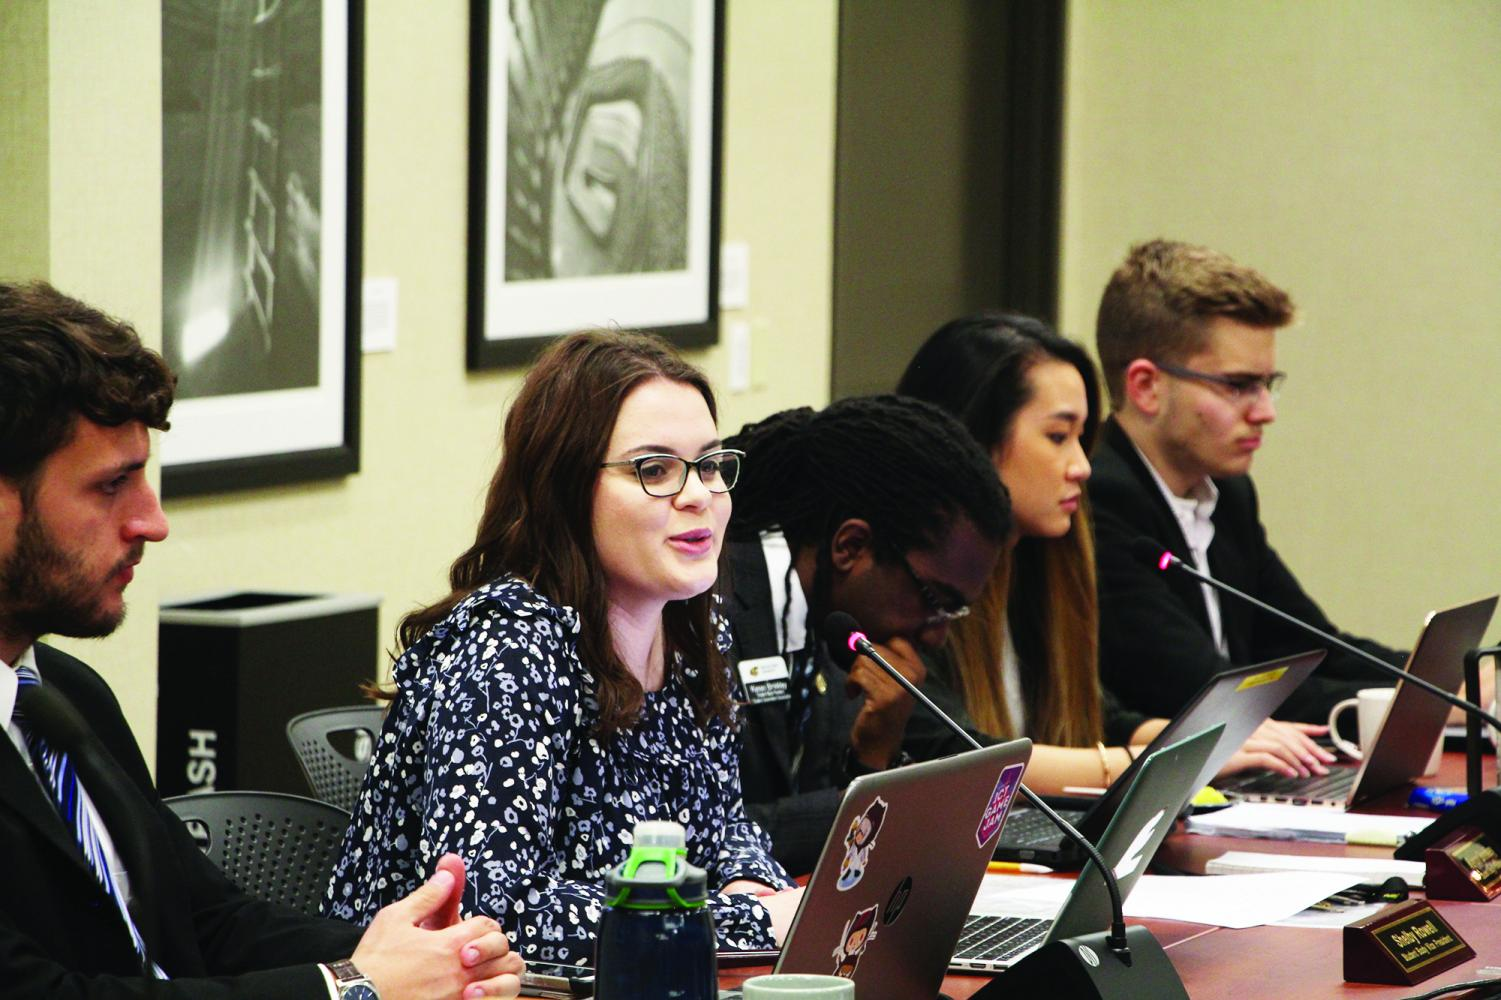 Student Body Vice President Shelby Rowell speaks during the Sept. 25 SGA meeting, where $5,000 were allocated for two livestreaming cameras. The cameras allow for repositioning and zooming by remote. (File photo)